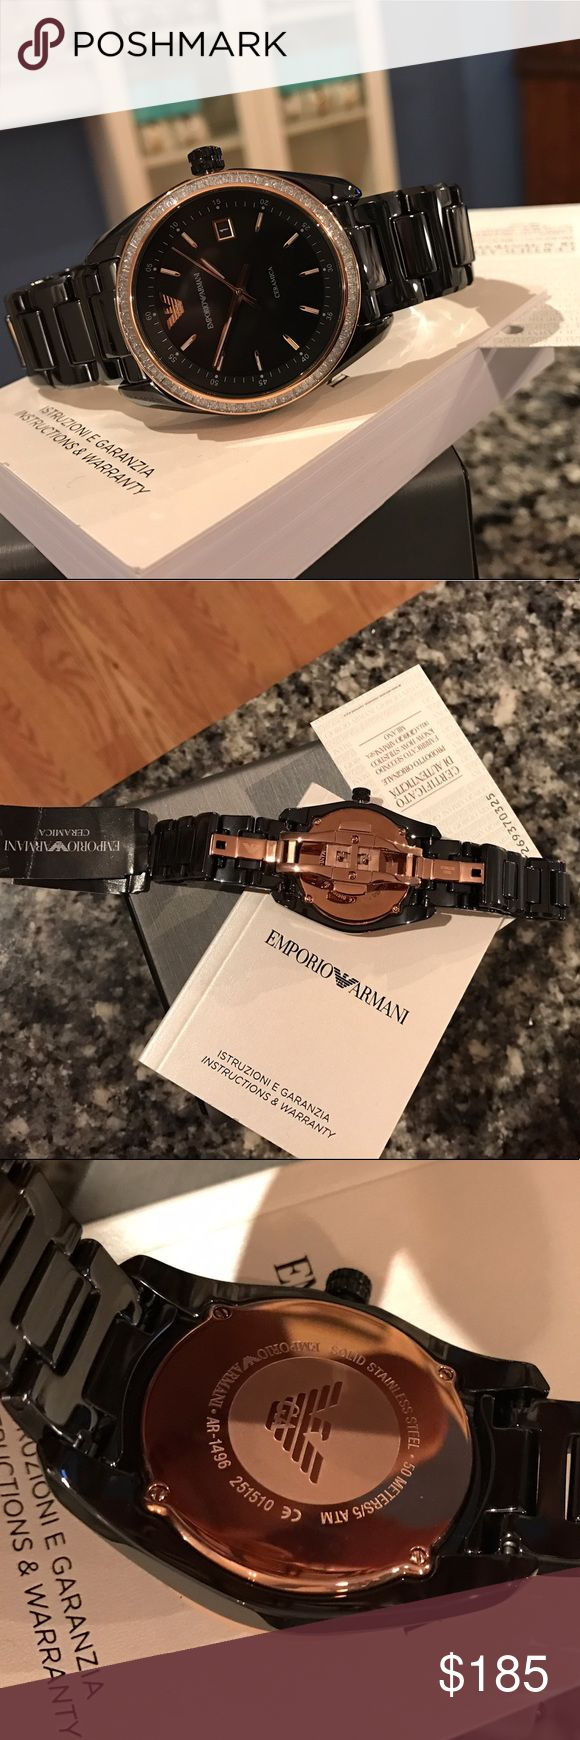 $525 Ladies Emporio Armani Ceramic watch AR1496 Armani GA Cleramica AR1496  * Black ceramic 💎 Rose gold 🔥 Glitz 💎  * Analog Scratch resistant mineral crystal.  * Case size: 39 mm. Case thickness: 8 mm. Round case shape. Band width: 16 mm. Deployment clasp. Water resistant 50 meters.  * UPC: 723763230681 / Retail: $525  * NO TRADES. Buy now or offer only * Shipped same business day. Emporio Armani Accessories Watches